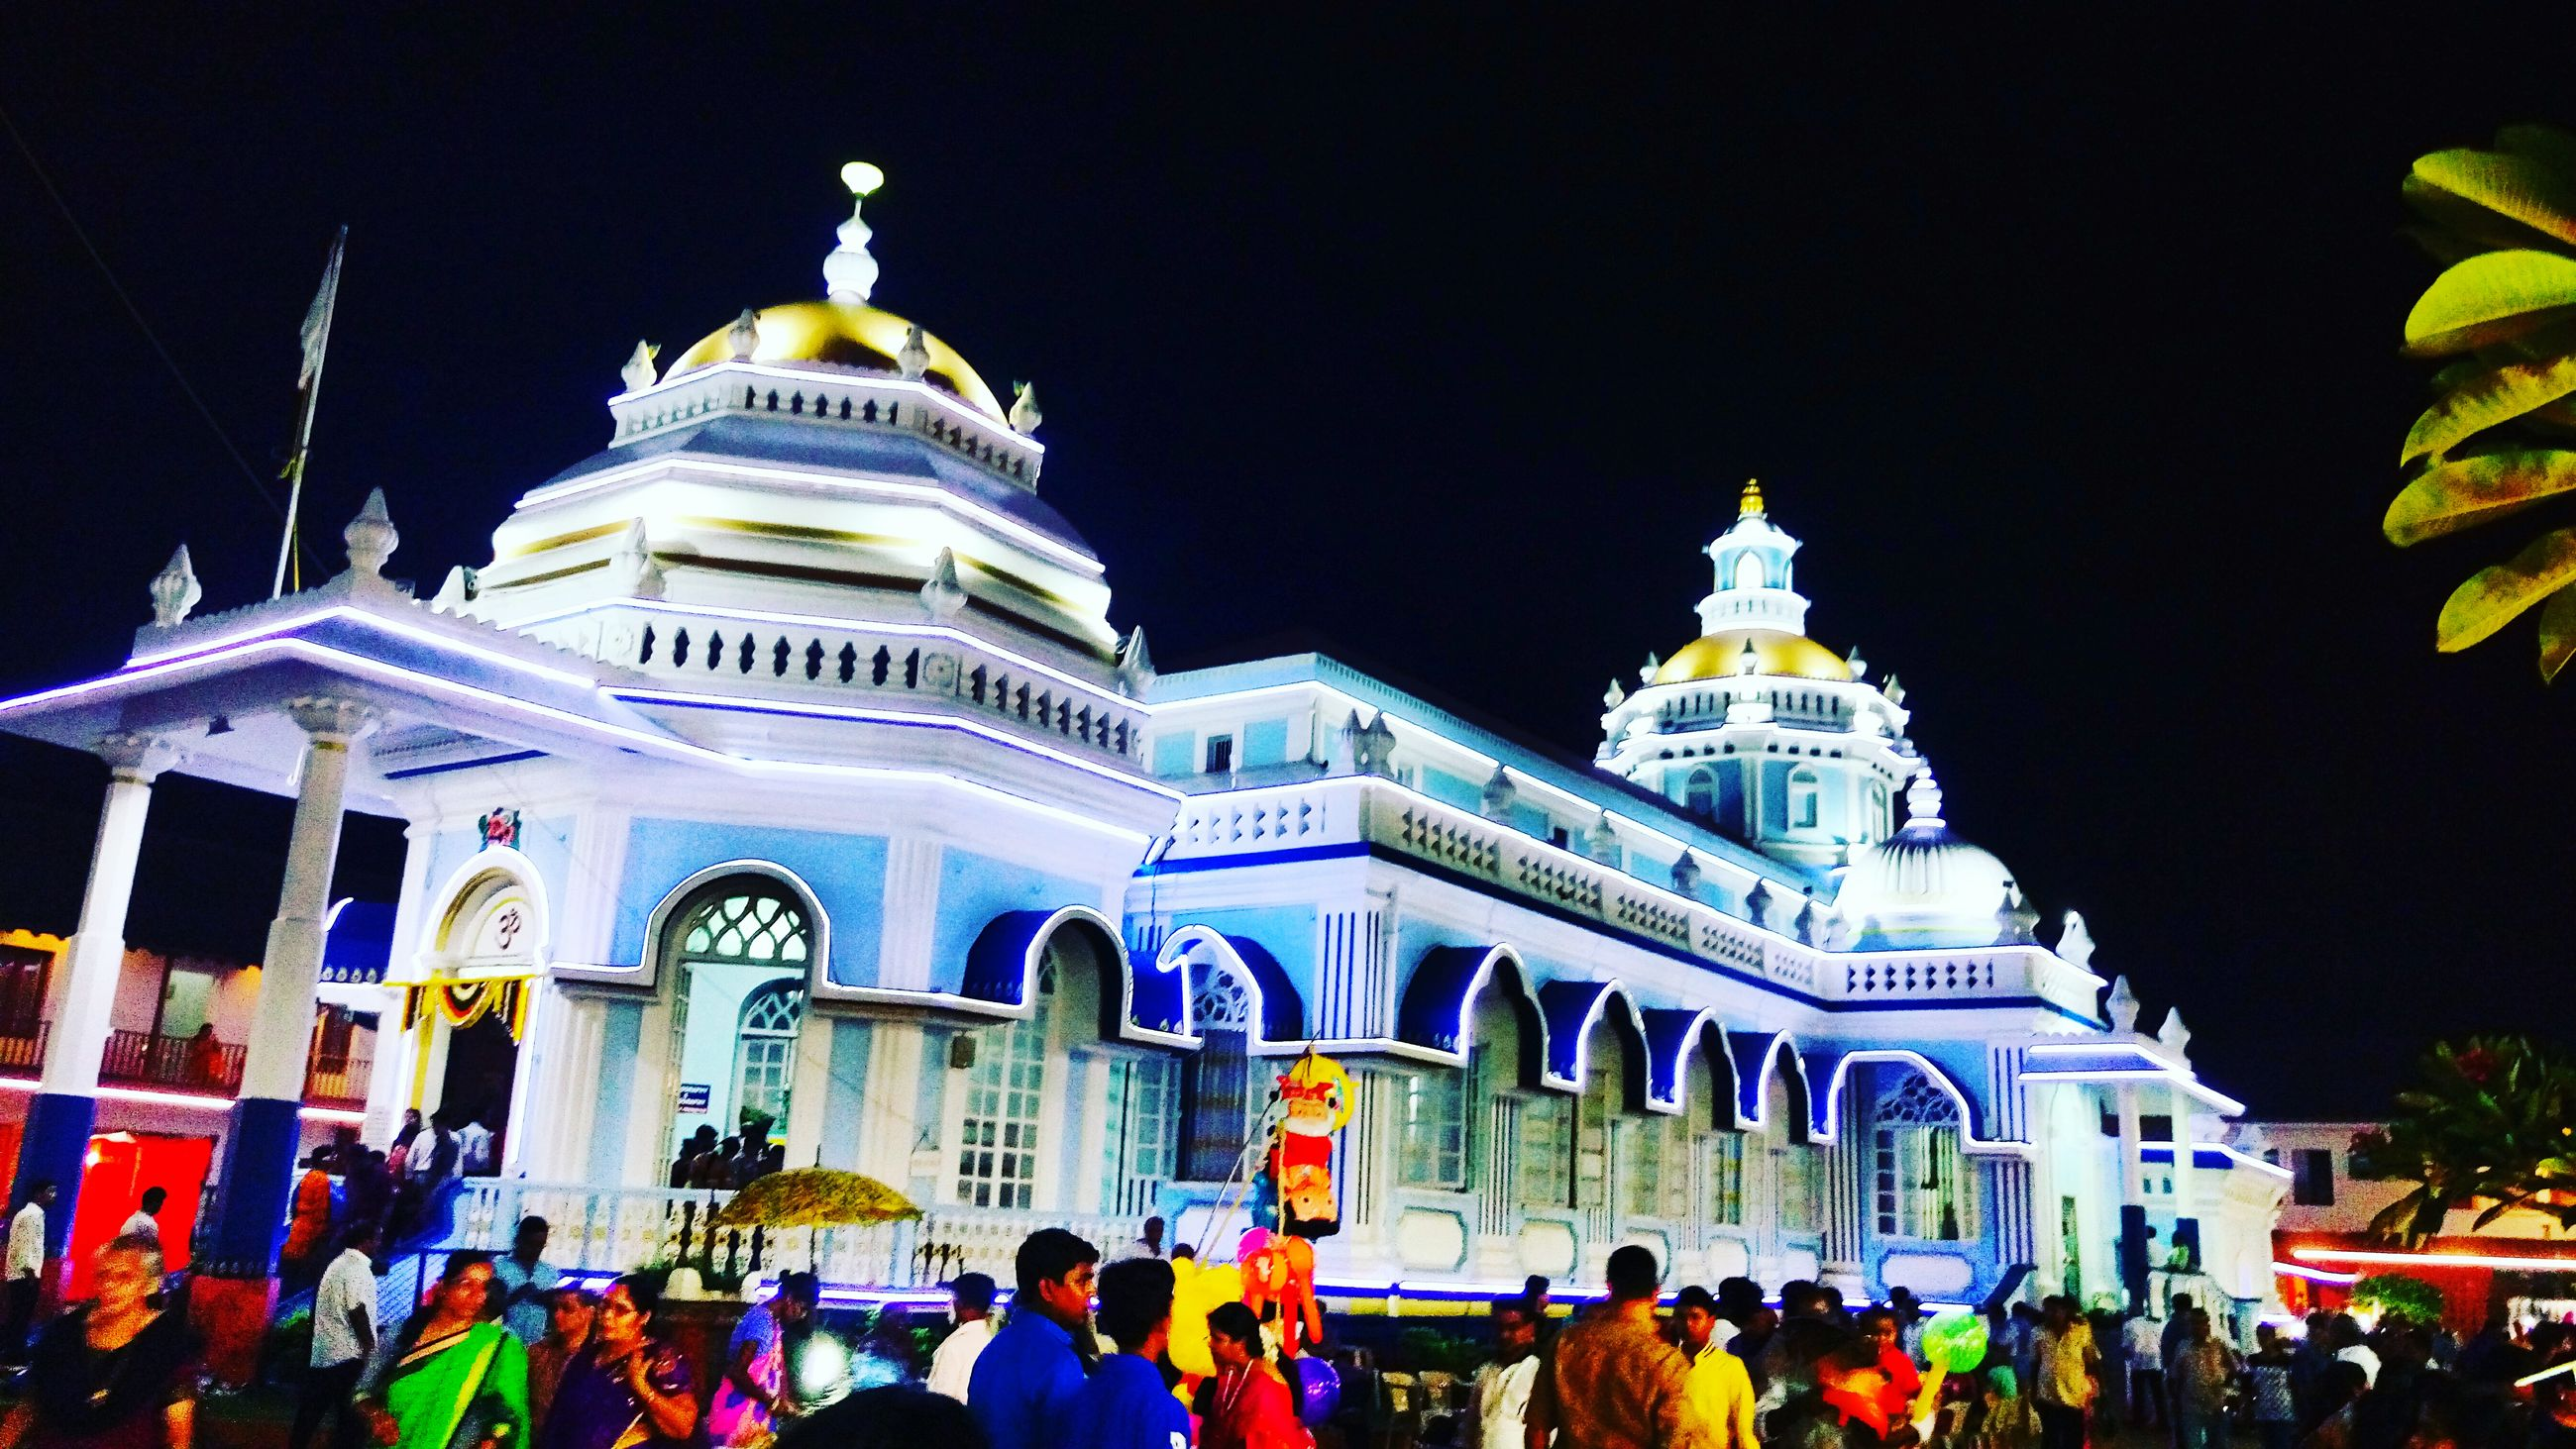 large group of people, architecture, built structure, building exterior, religion, place of worship, men, lifestyles, person, spirituality, famous place, crowd, travel destinations, tourism, illuminated, leisure activity, international landmark, travel, clear sky